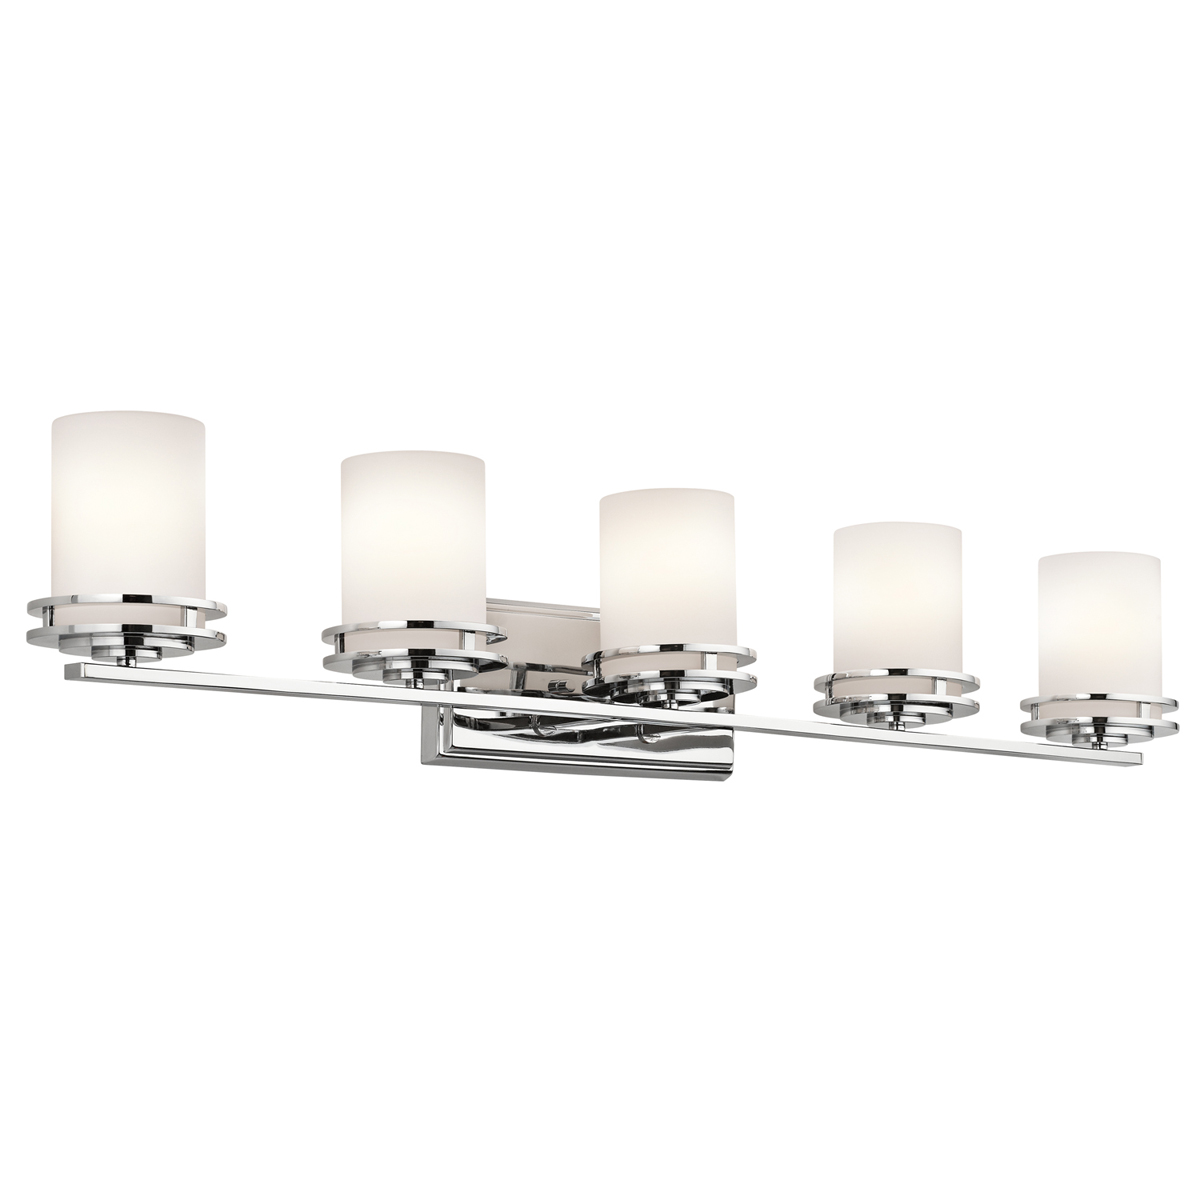 kichler lighting 5085ch hendrik 5 light bath fixture in ForBathroom 5 Light Fixtures